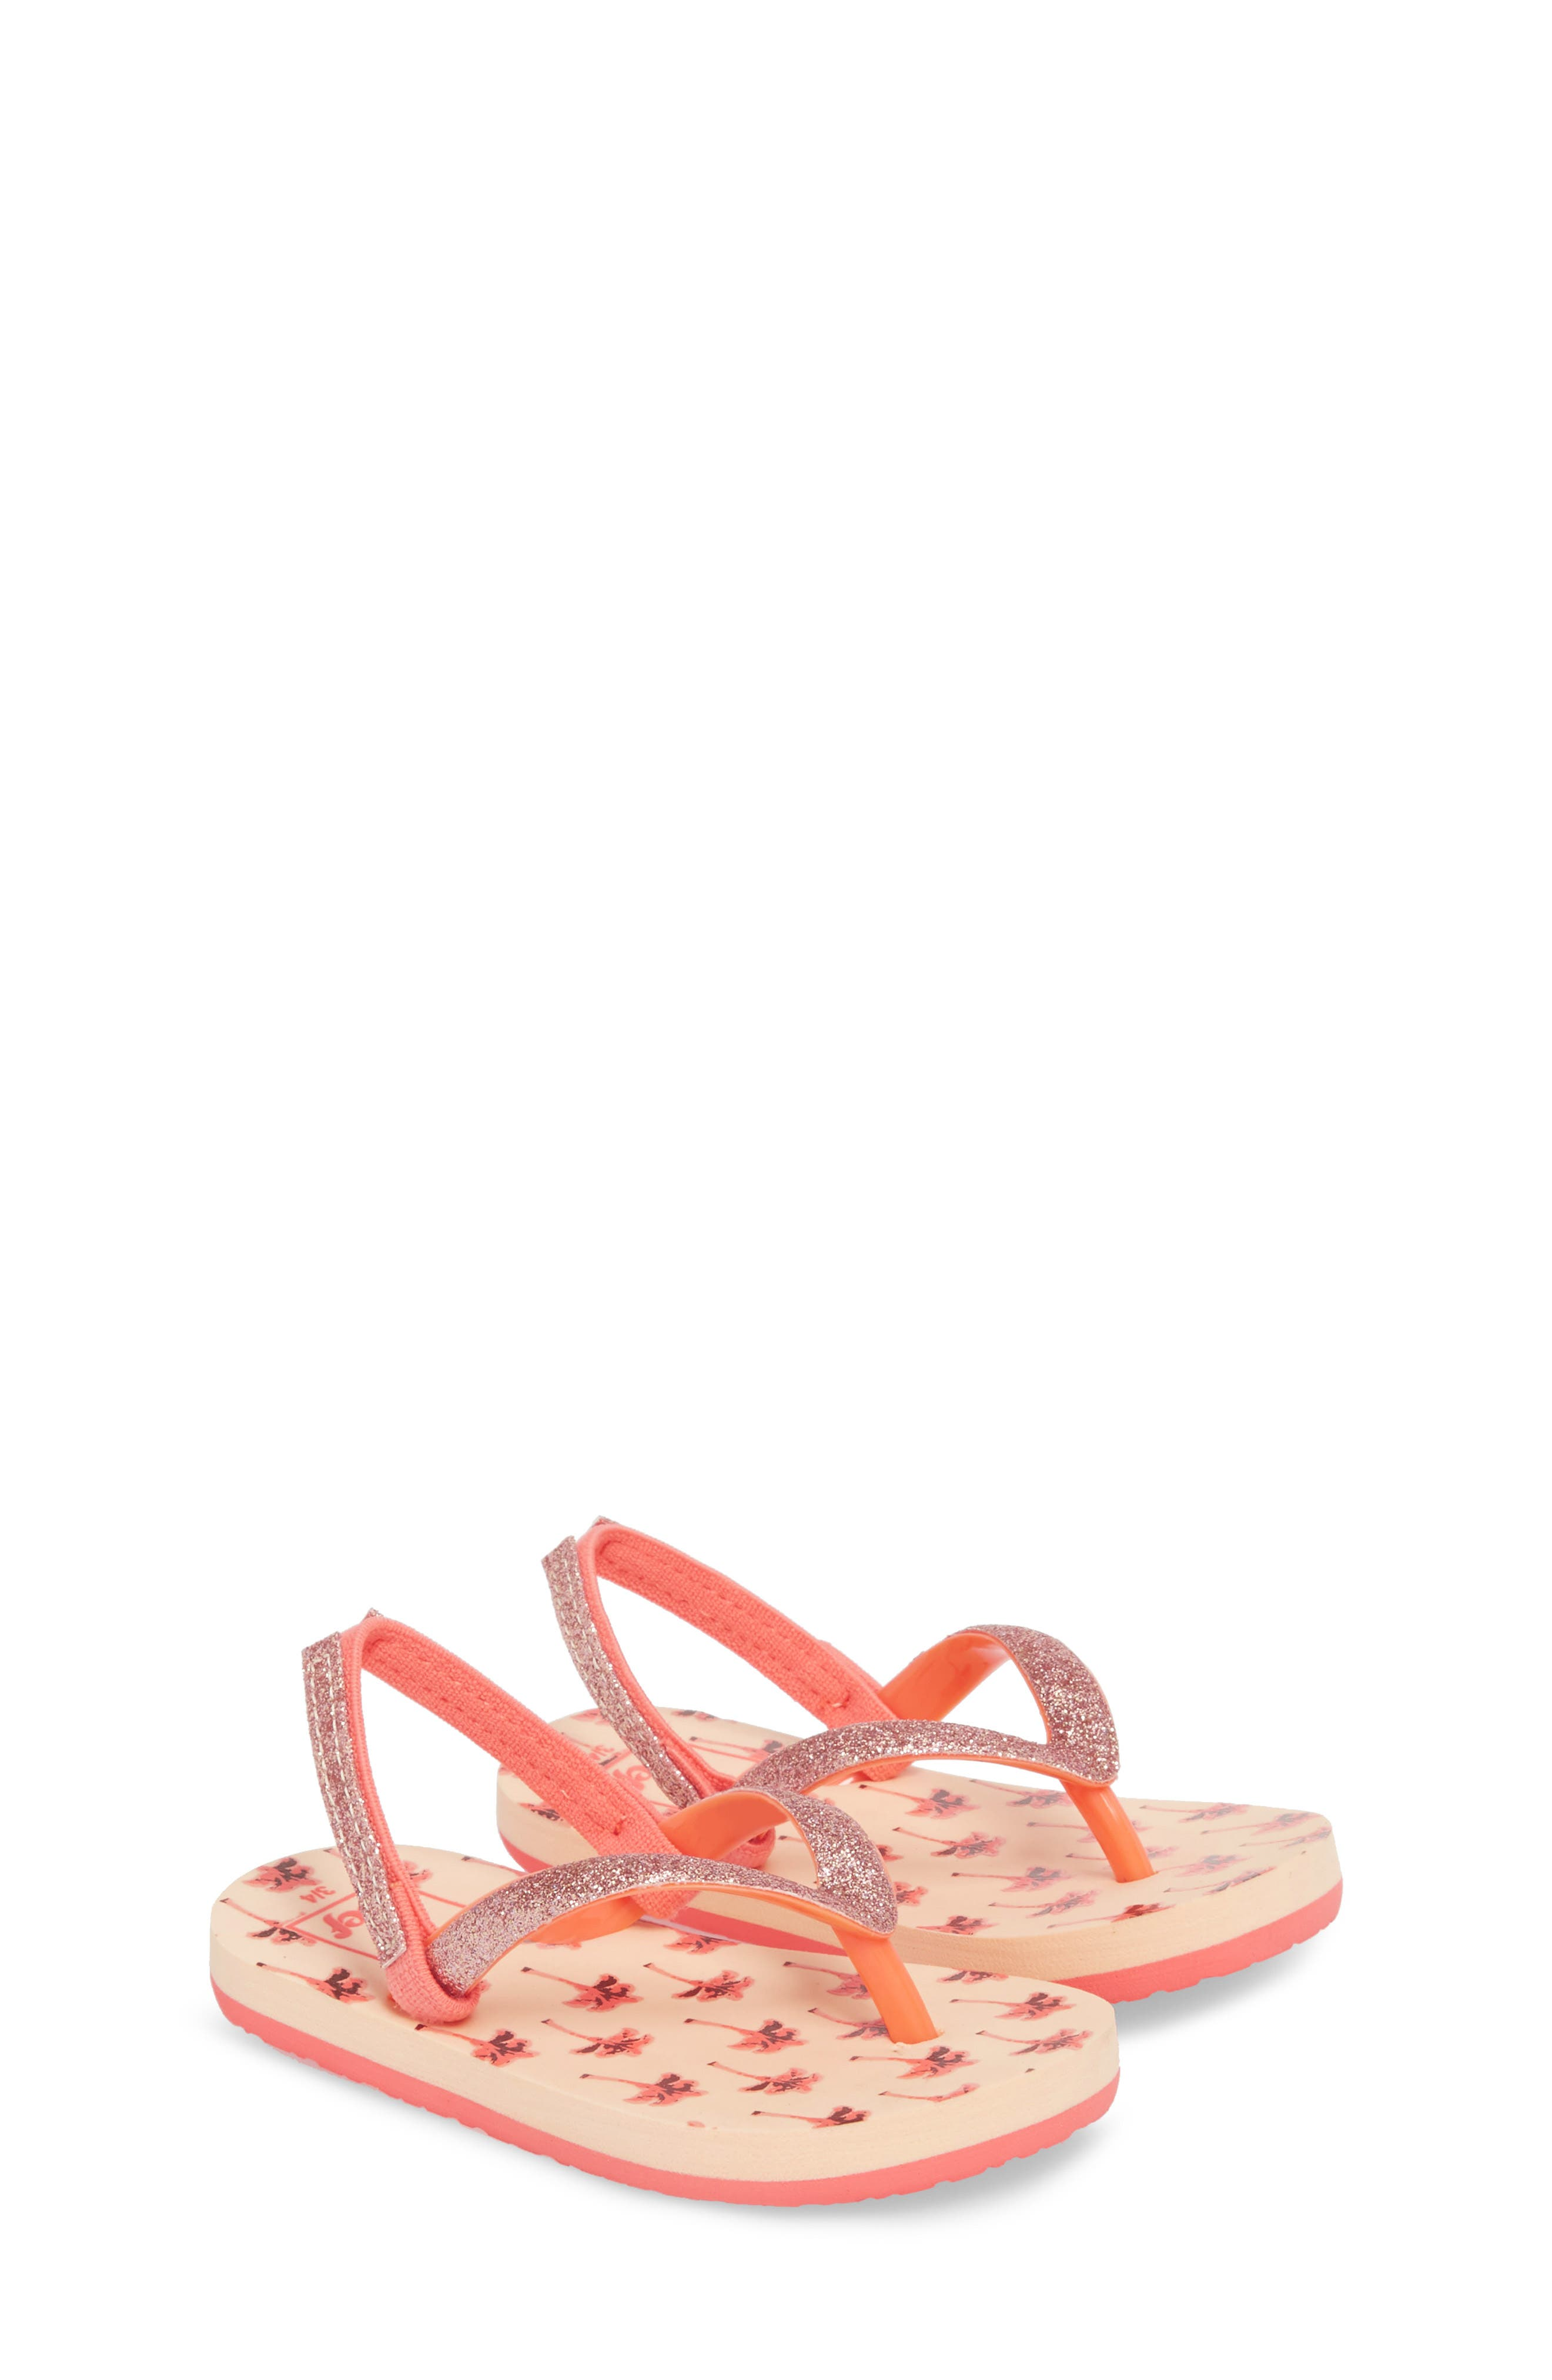 Little Stargazer Print Flip Flop,                             Alternate thumbnail 3, color,                             Orange